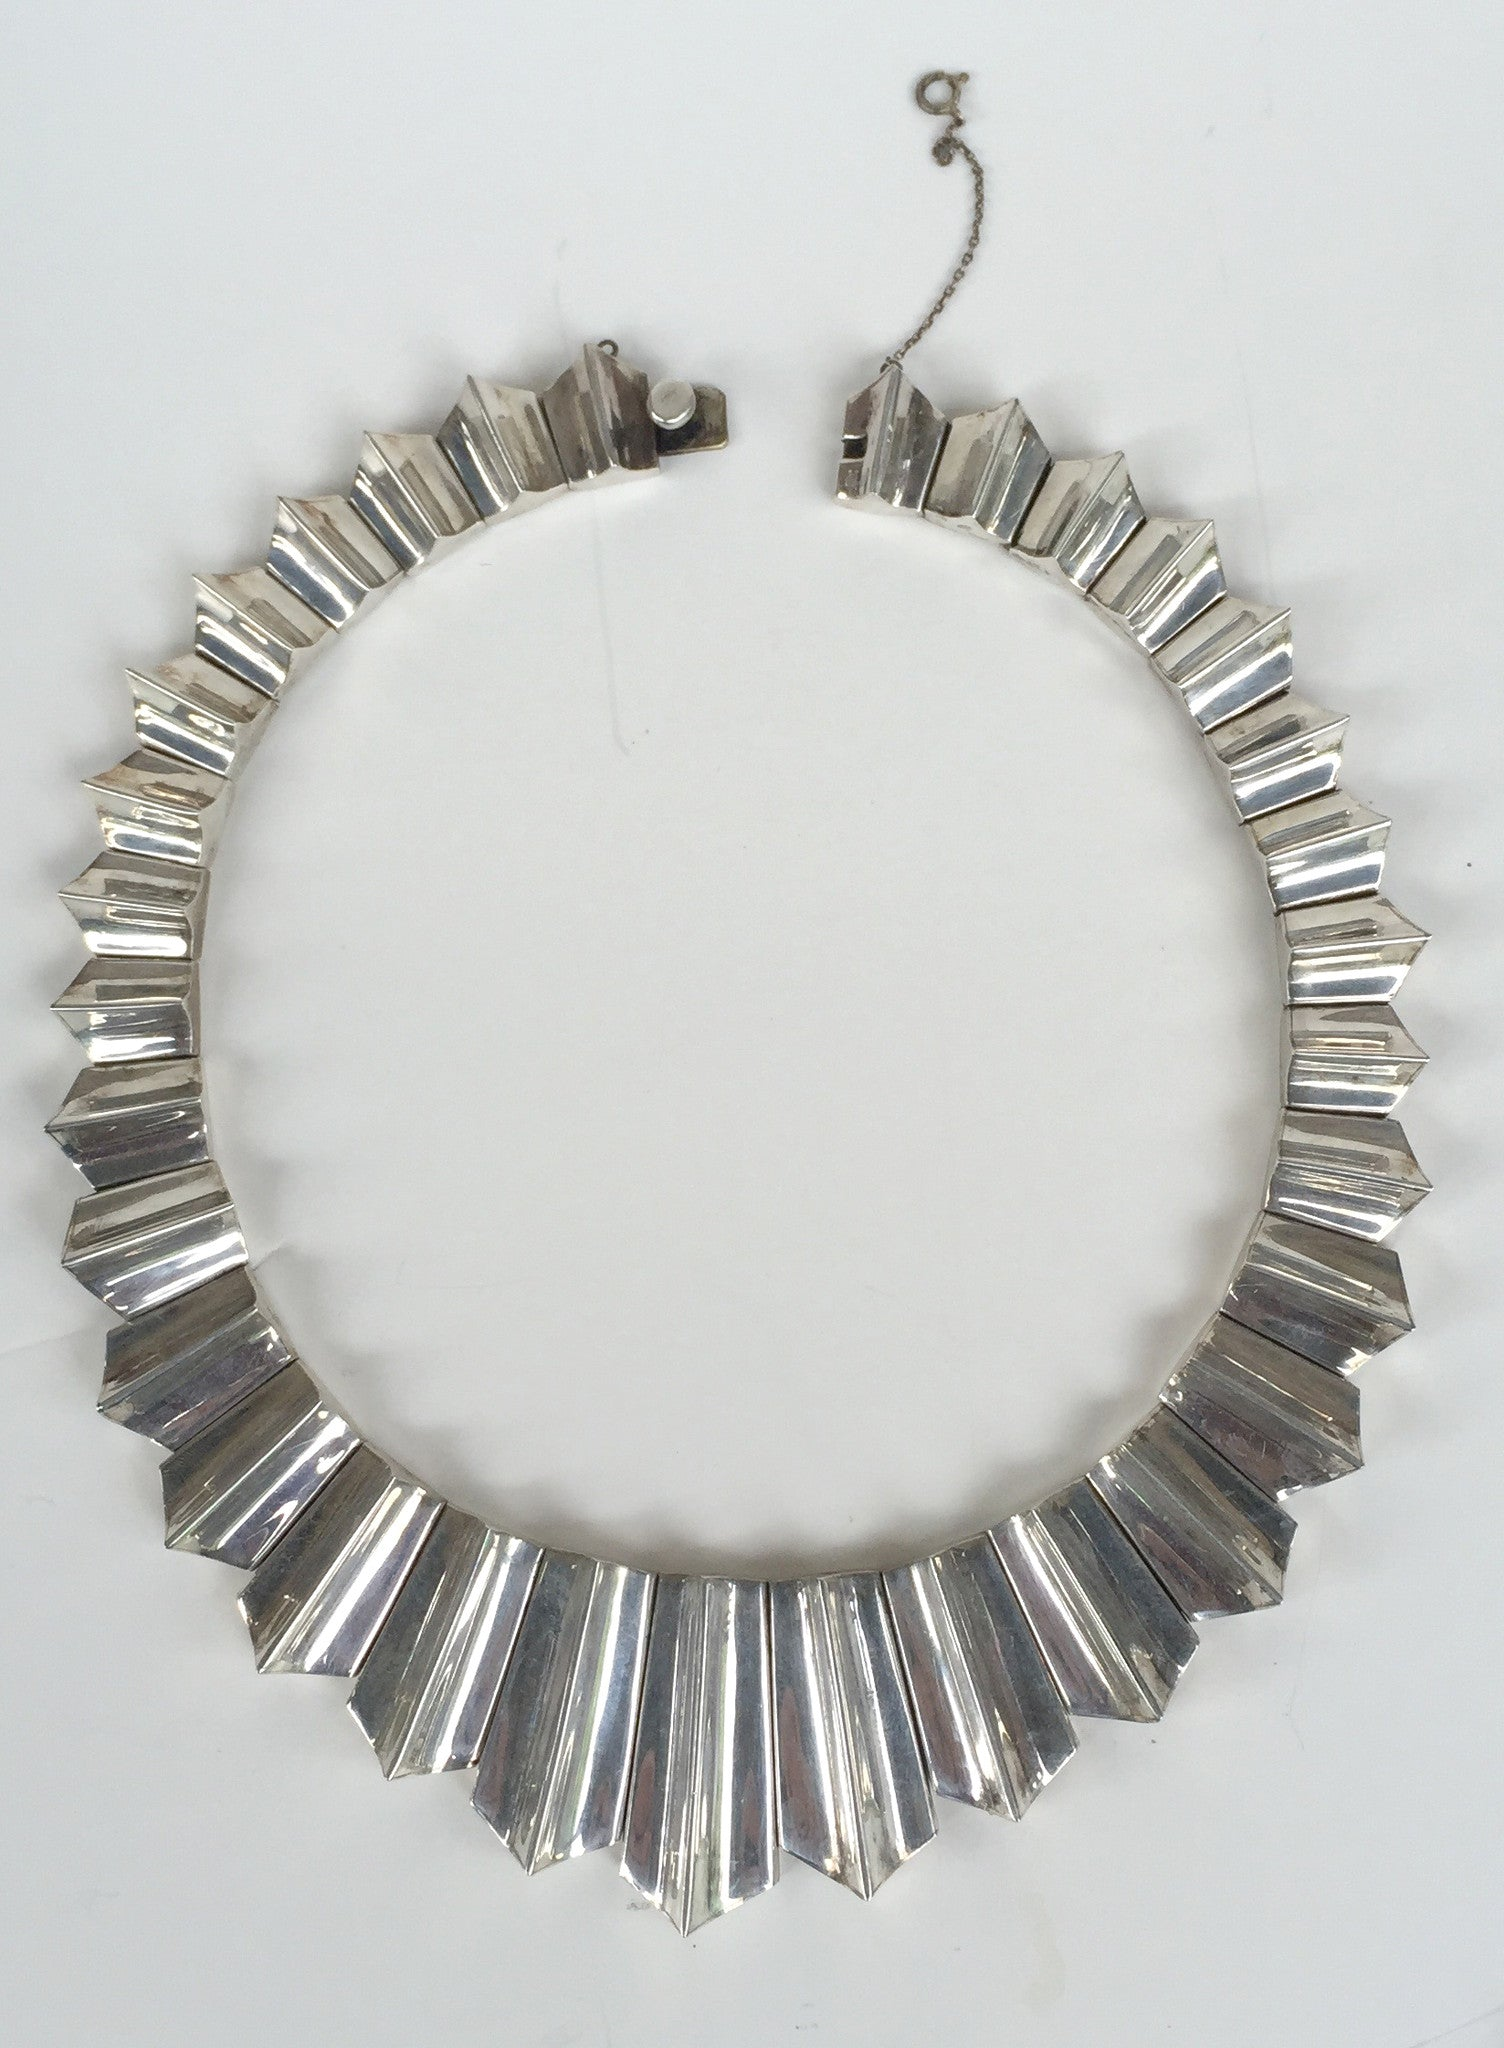 Mexican Modernist Silver Zig Zag Necklace, after Antonio Piñeda Taxco